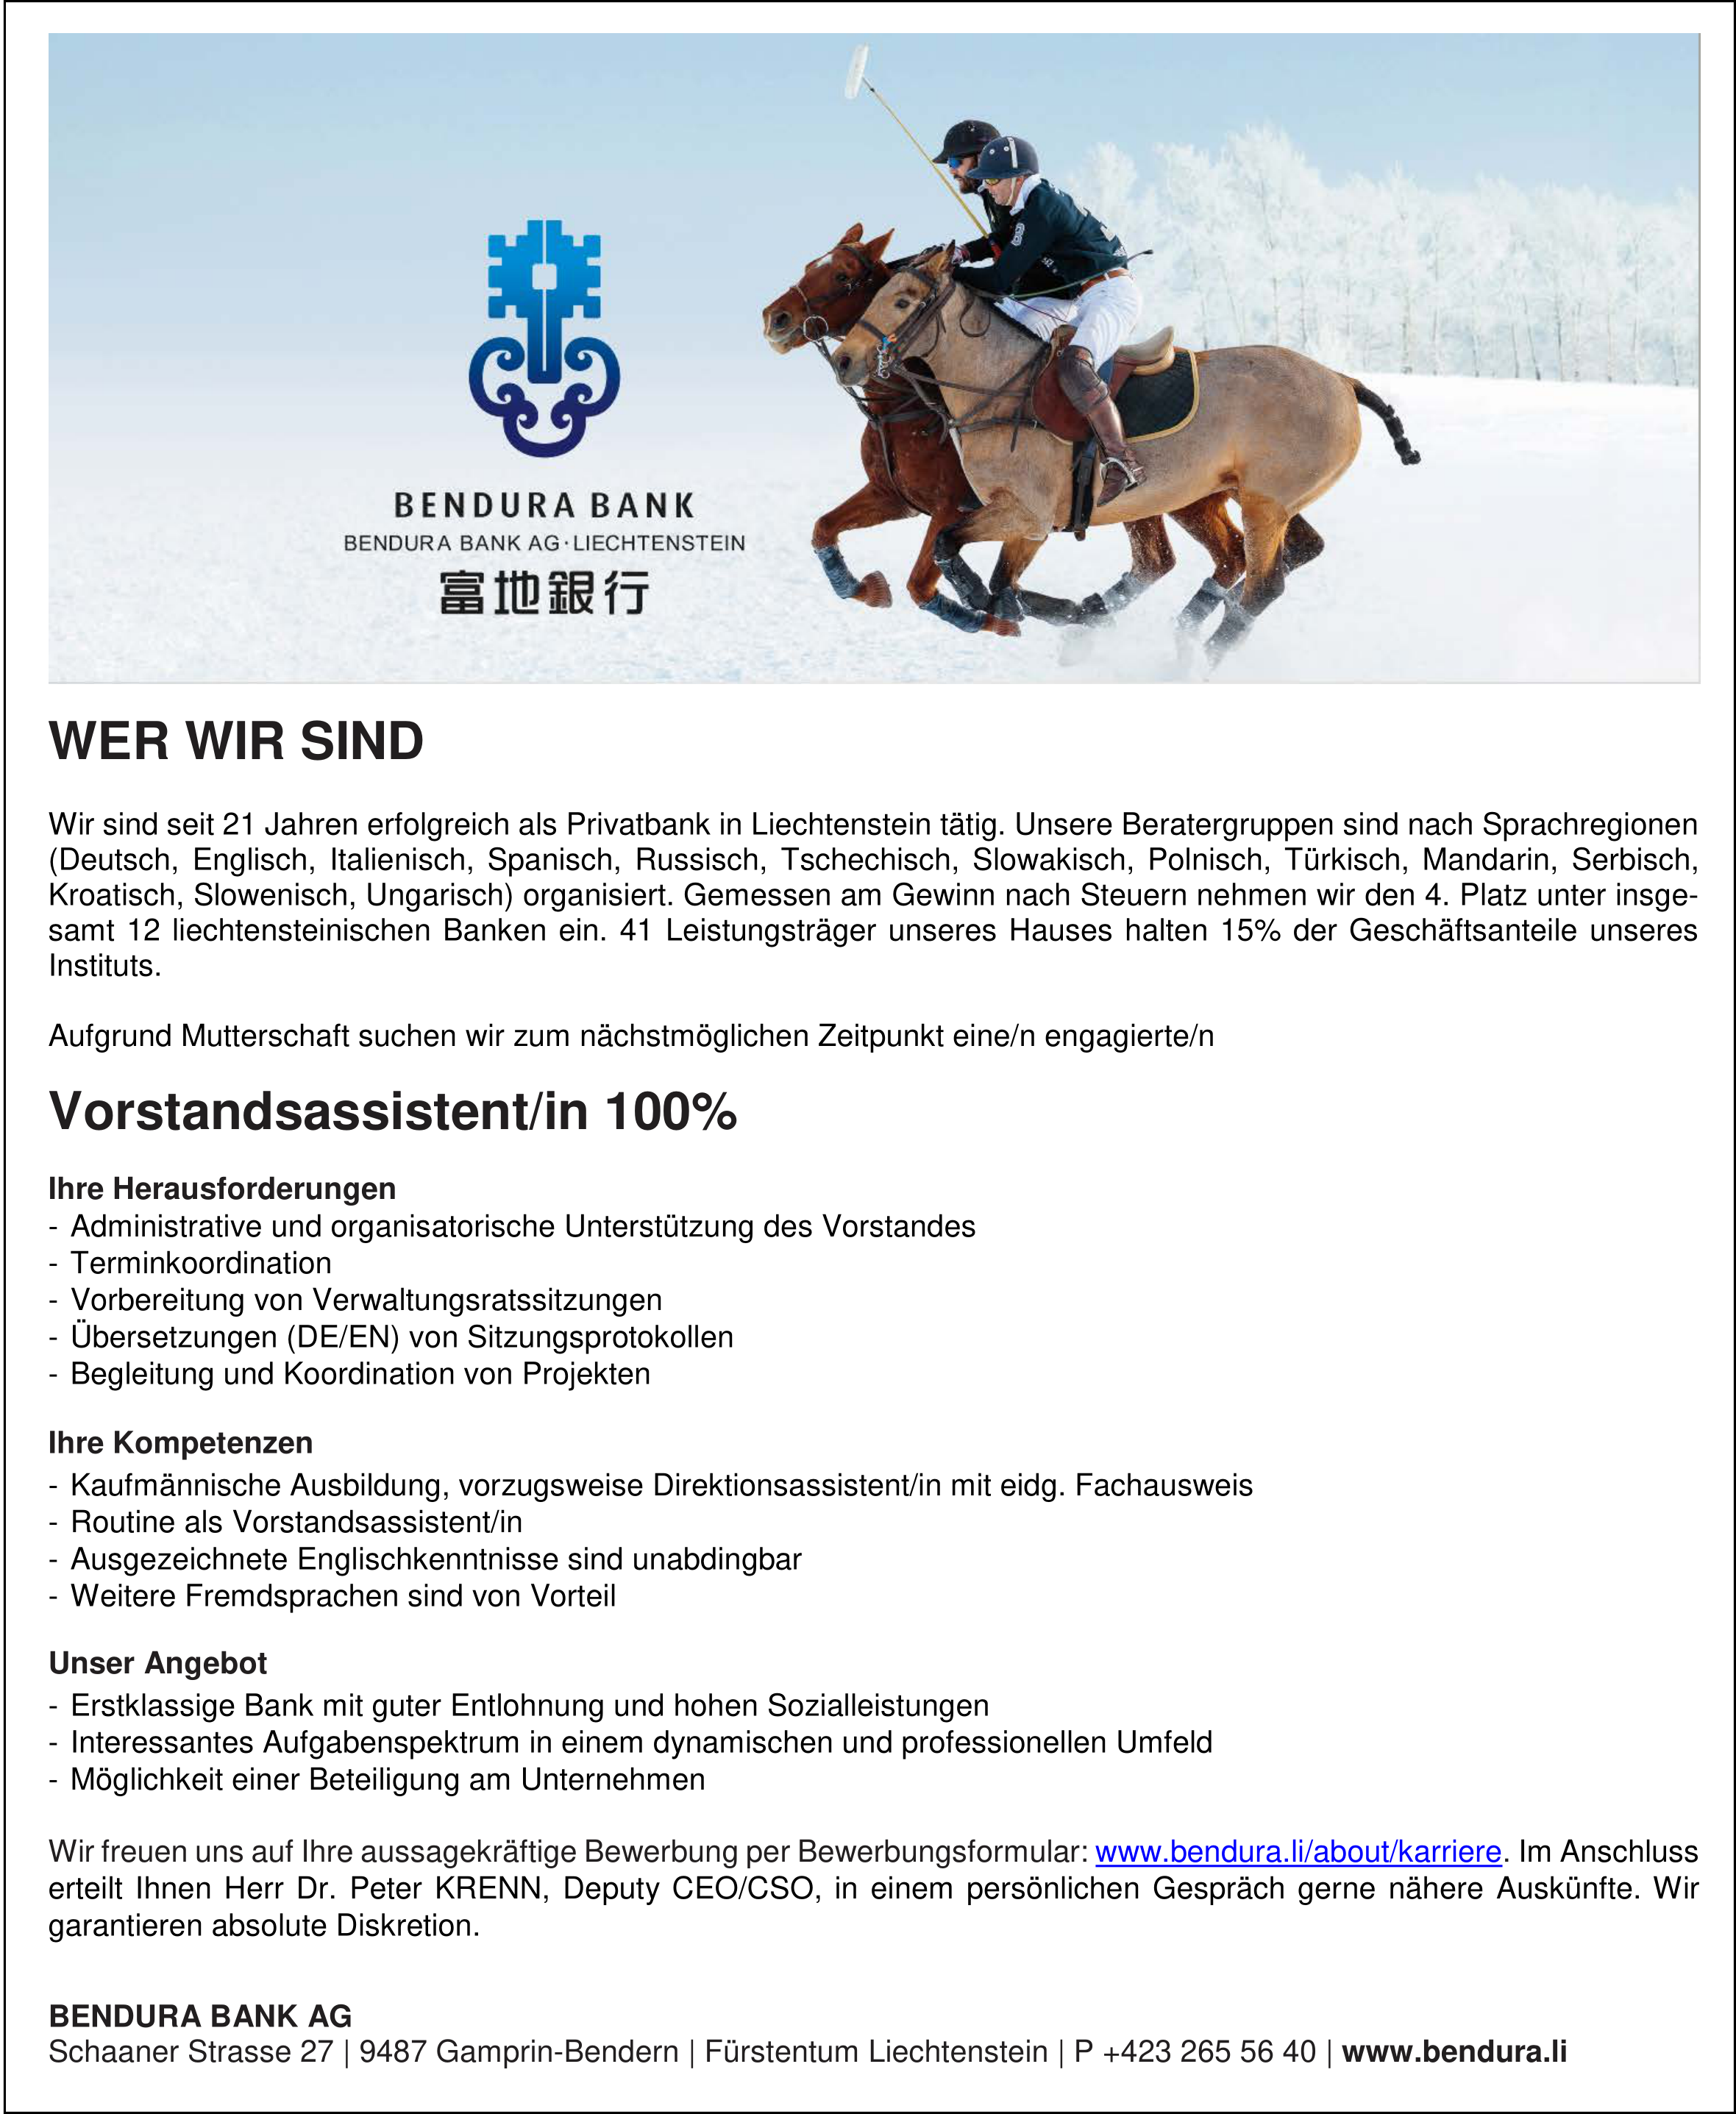 Vorstandsassistent/in 100%